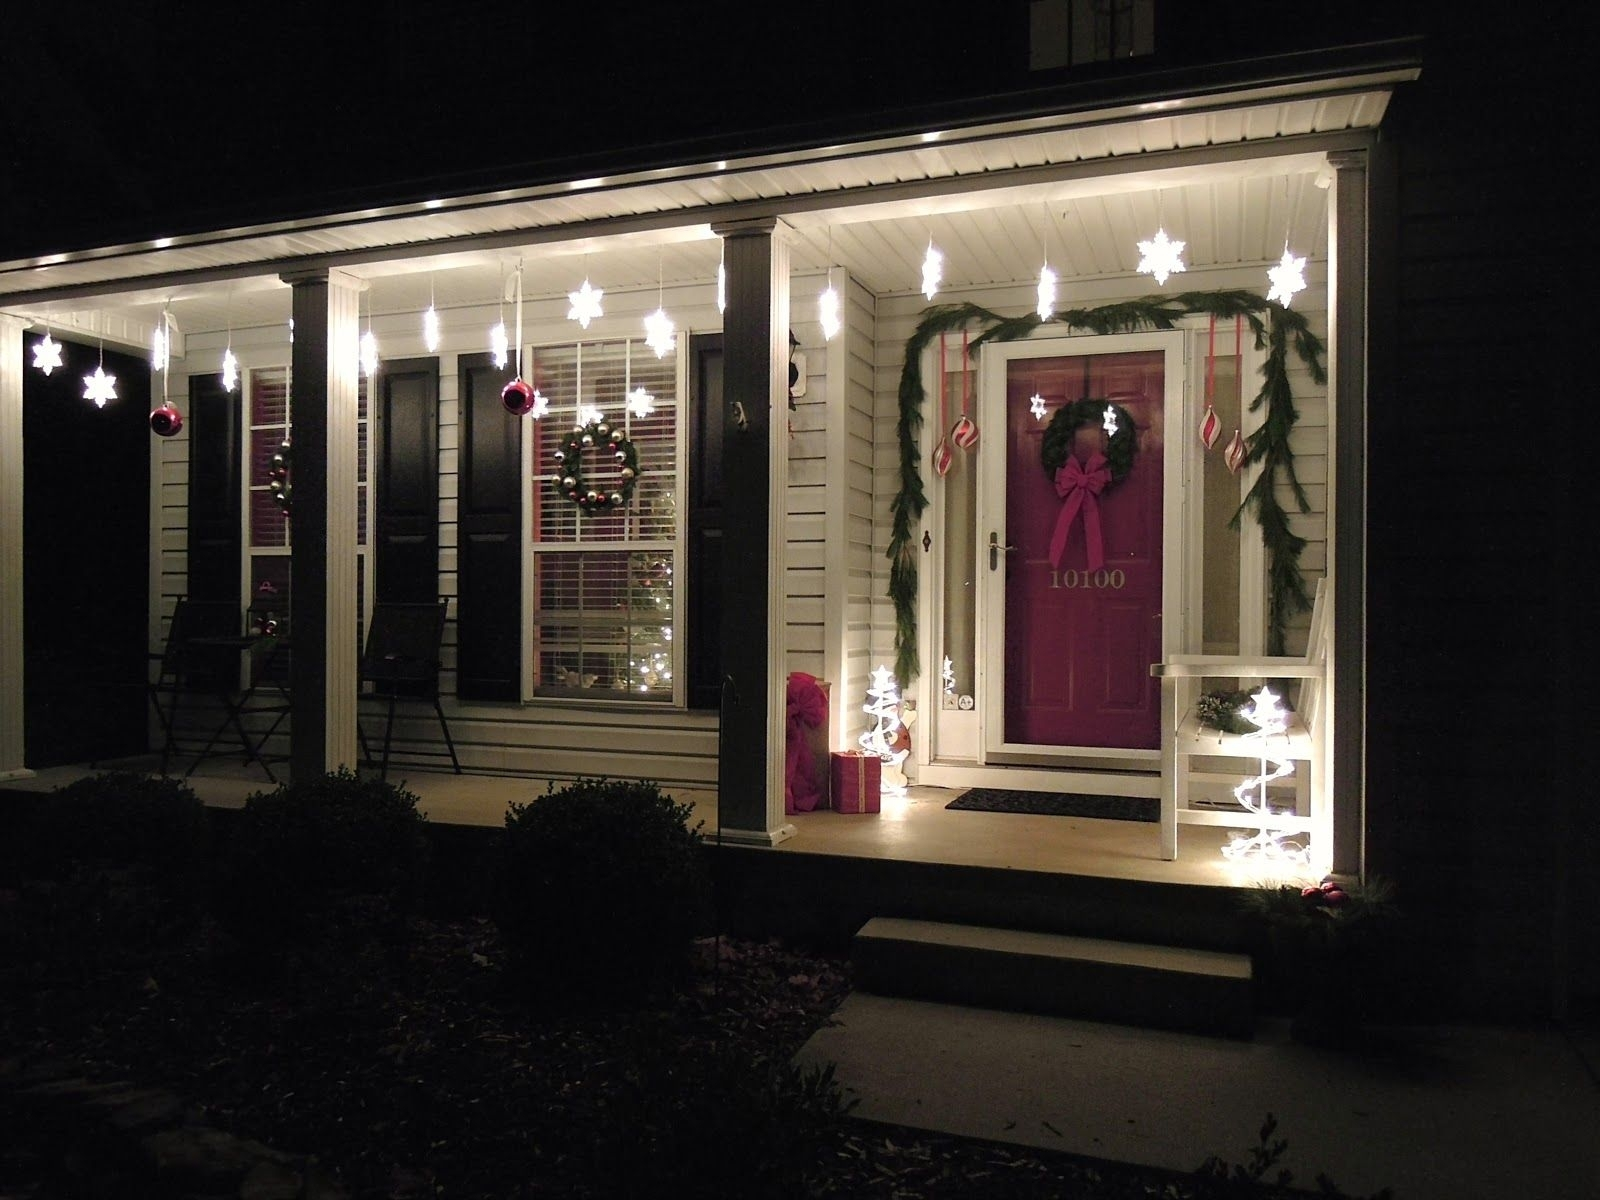 Inspiration about Image Result For Large Outdoor Snowflakes | Click Your Heels 3 Times With Regard To Outdoor Hanging Snowflake Lights (#1 of 15)